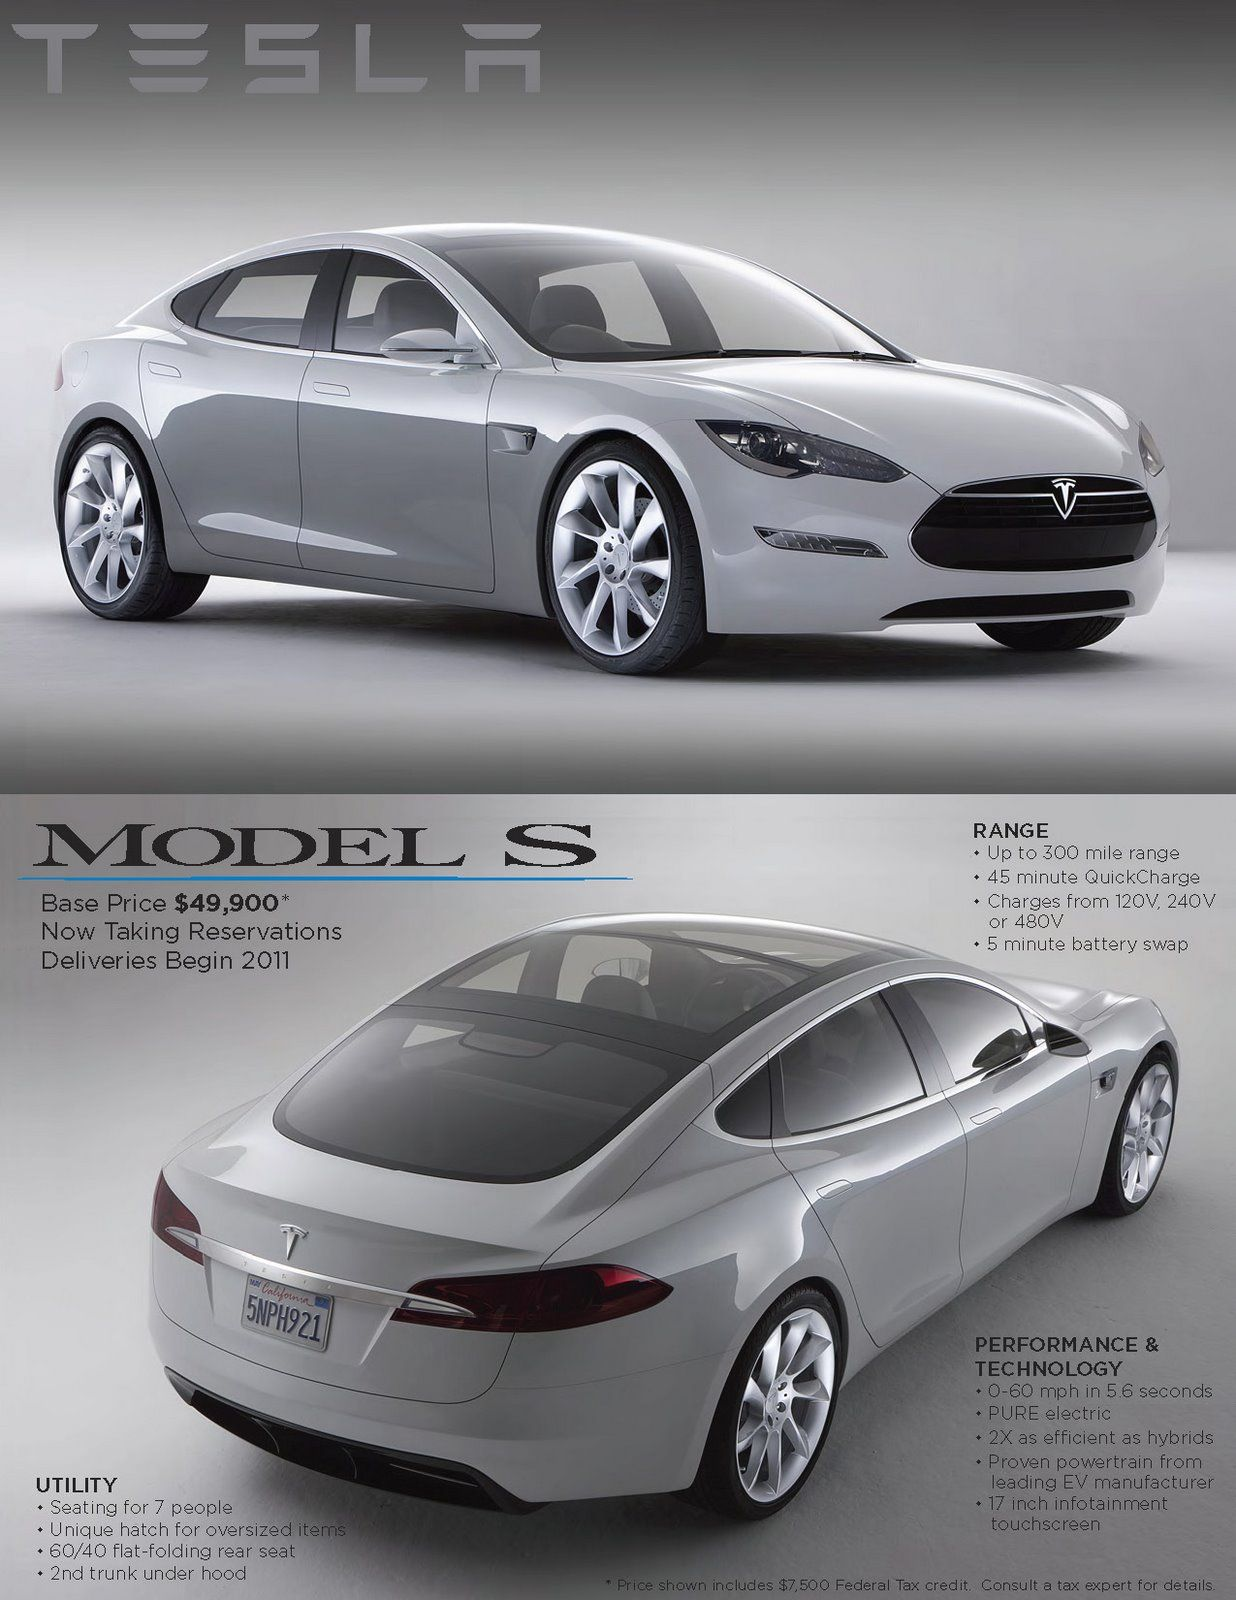 Tesla Model S is the coolest electric car on the planet and @eBay ...